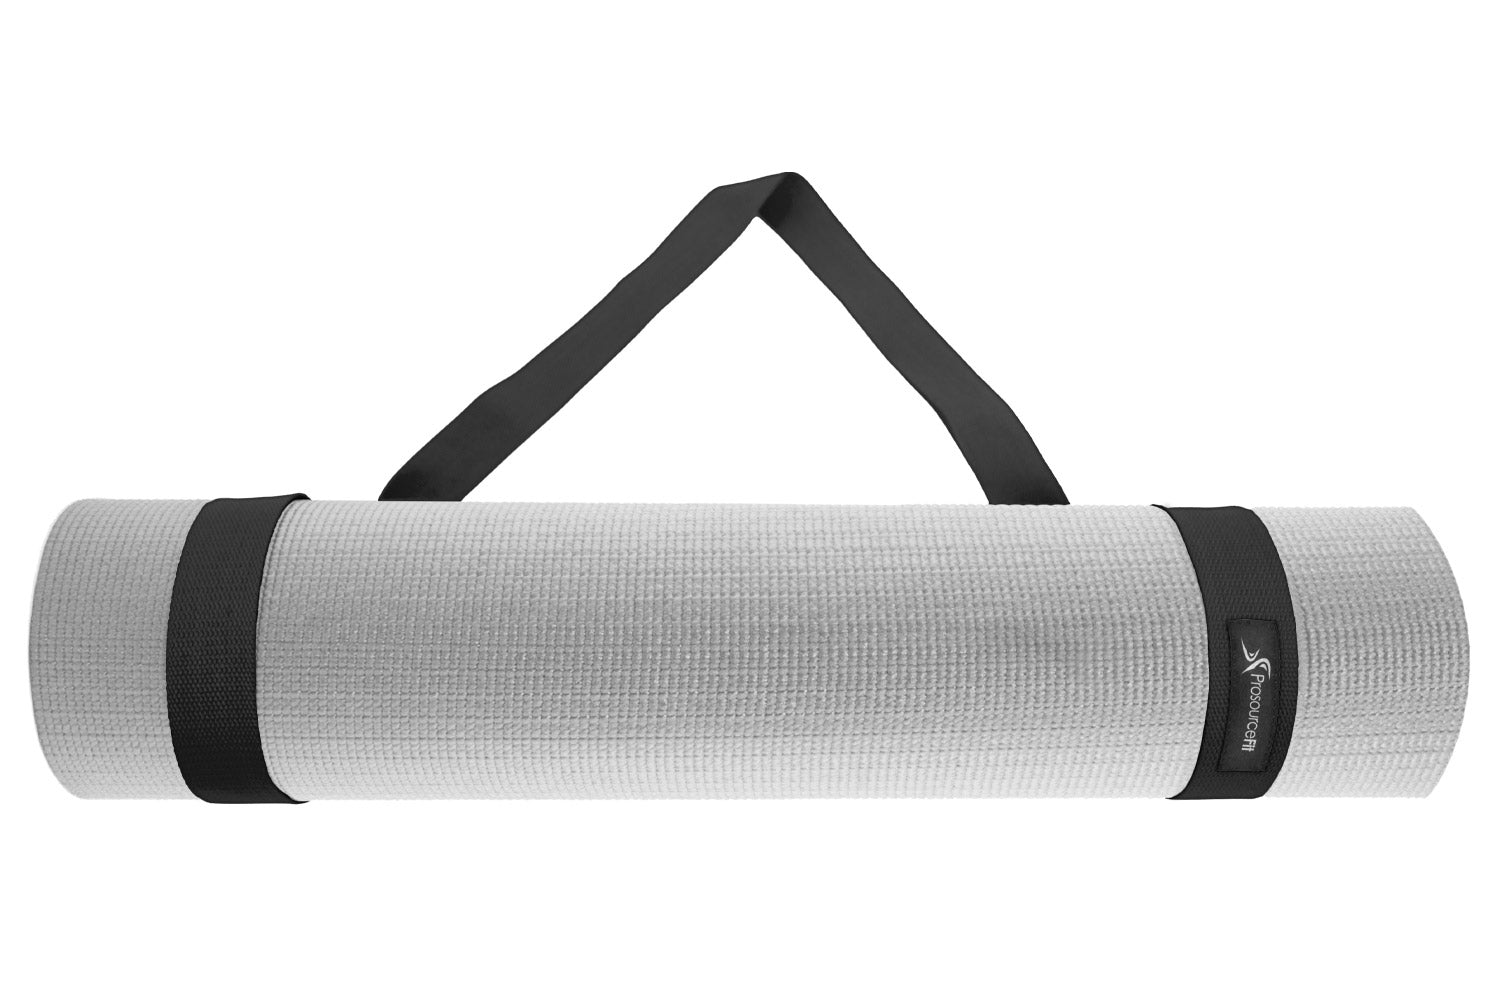 Black Yoga Mat Carrying Sling